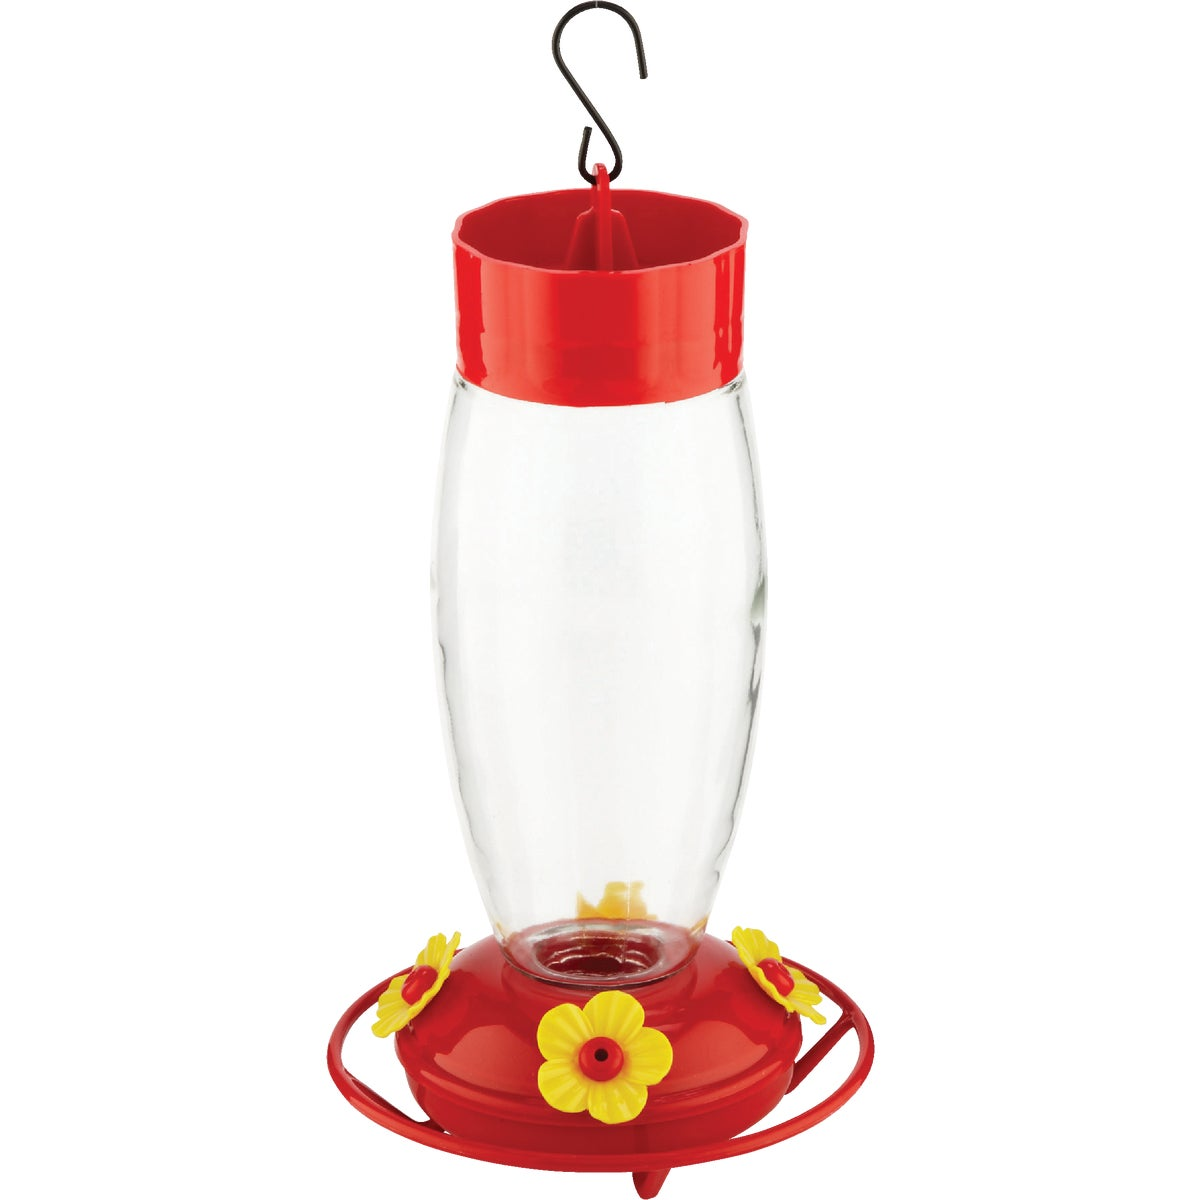 DLX HUMMINGBIRD FEEDER